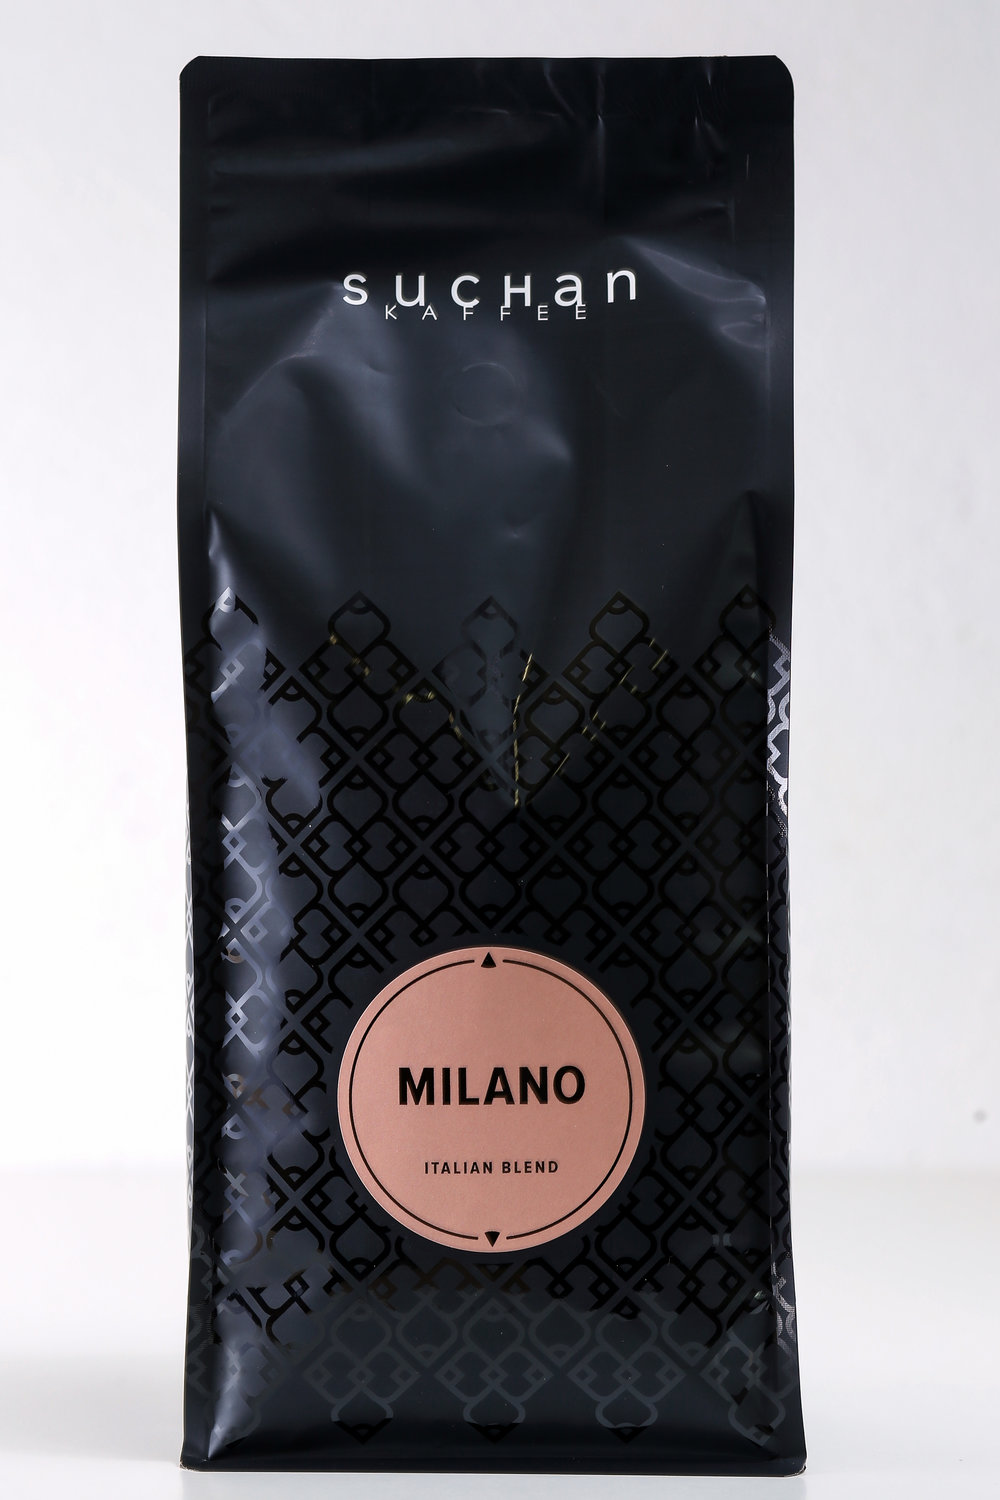 Milano ©SuchanKaffee